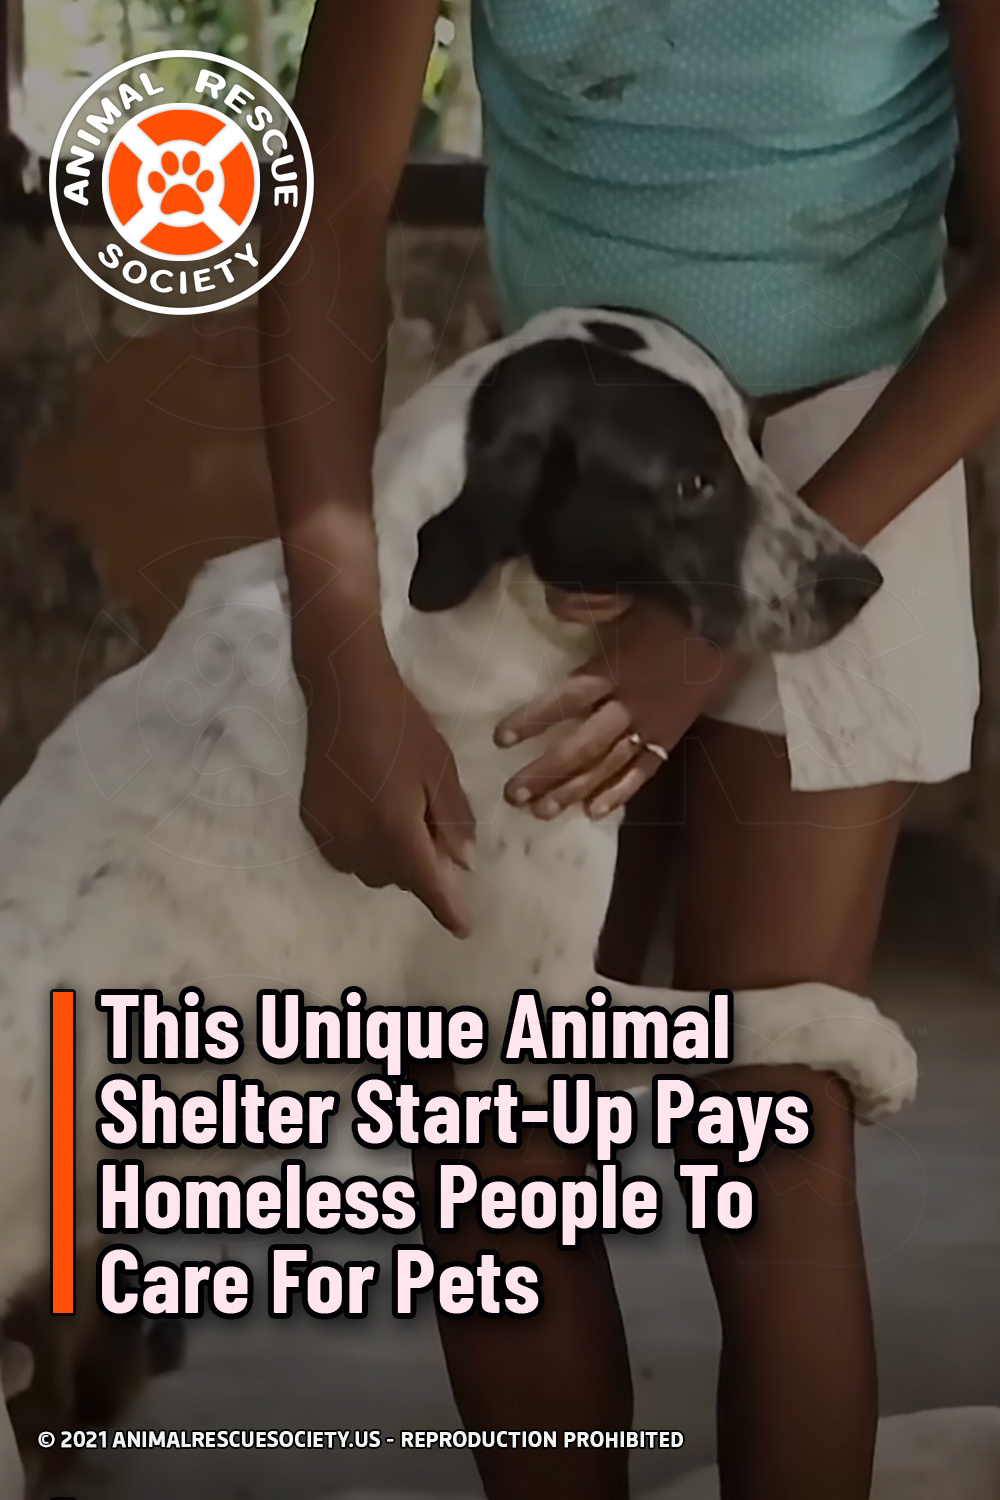 This Unique Animal Shelter Start-Up Pays Homeless People To Care For Pets